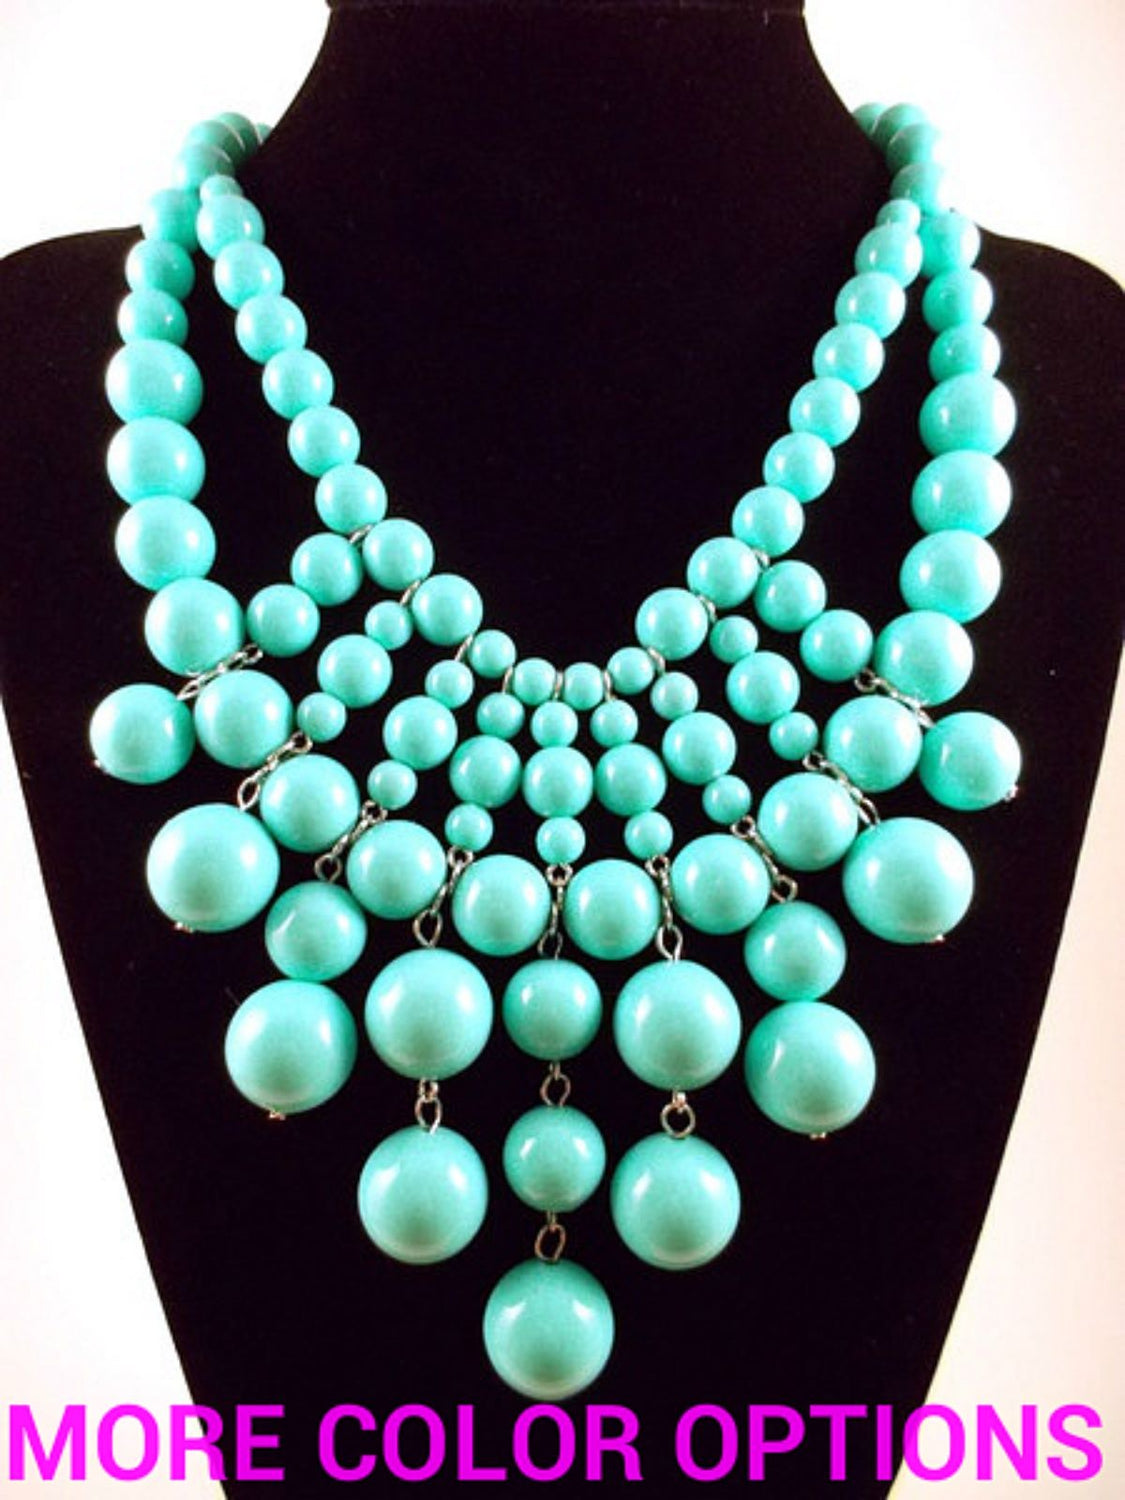 Bauble Bib Statement Necklace-2 BRAND NEW COLORS